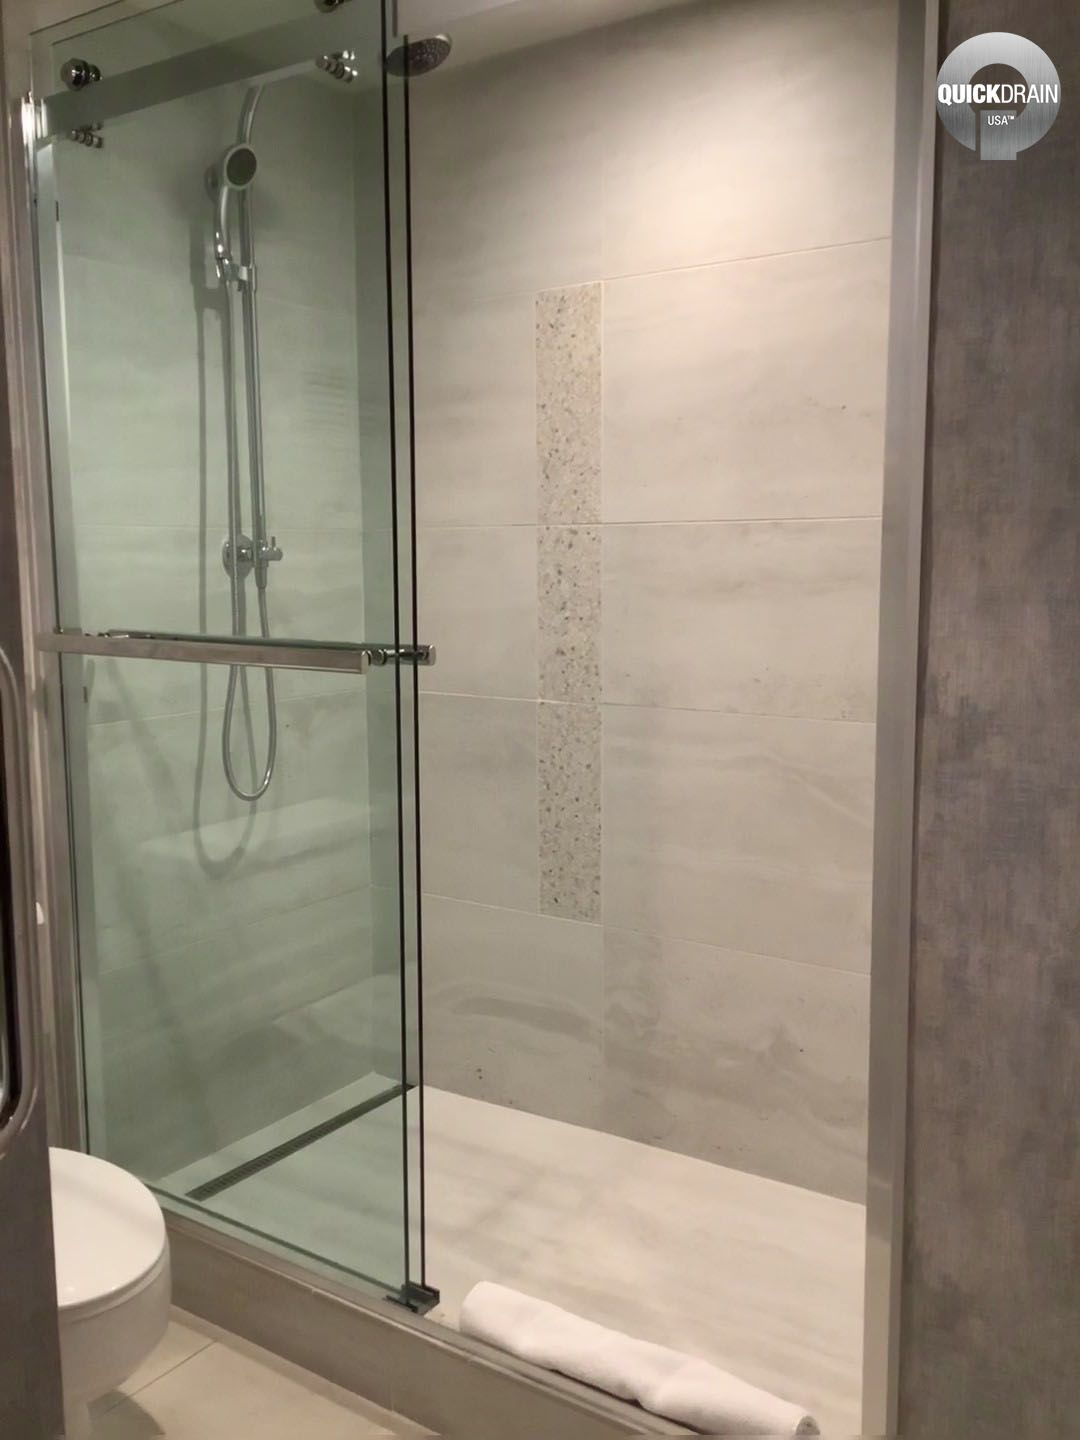 Proline Stainless Steel Linear Shower Drains Shower Drains Amazing Showers Accessible Shower